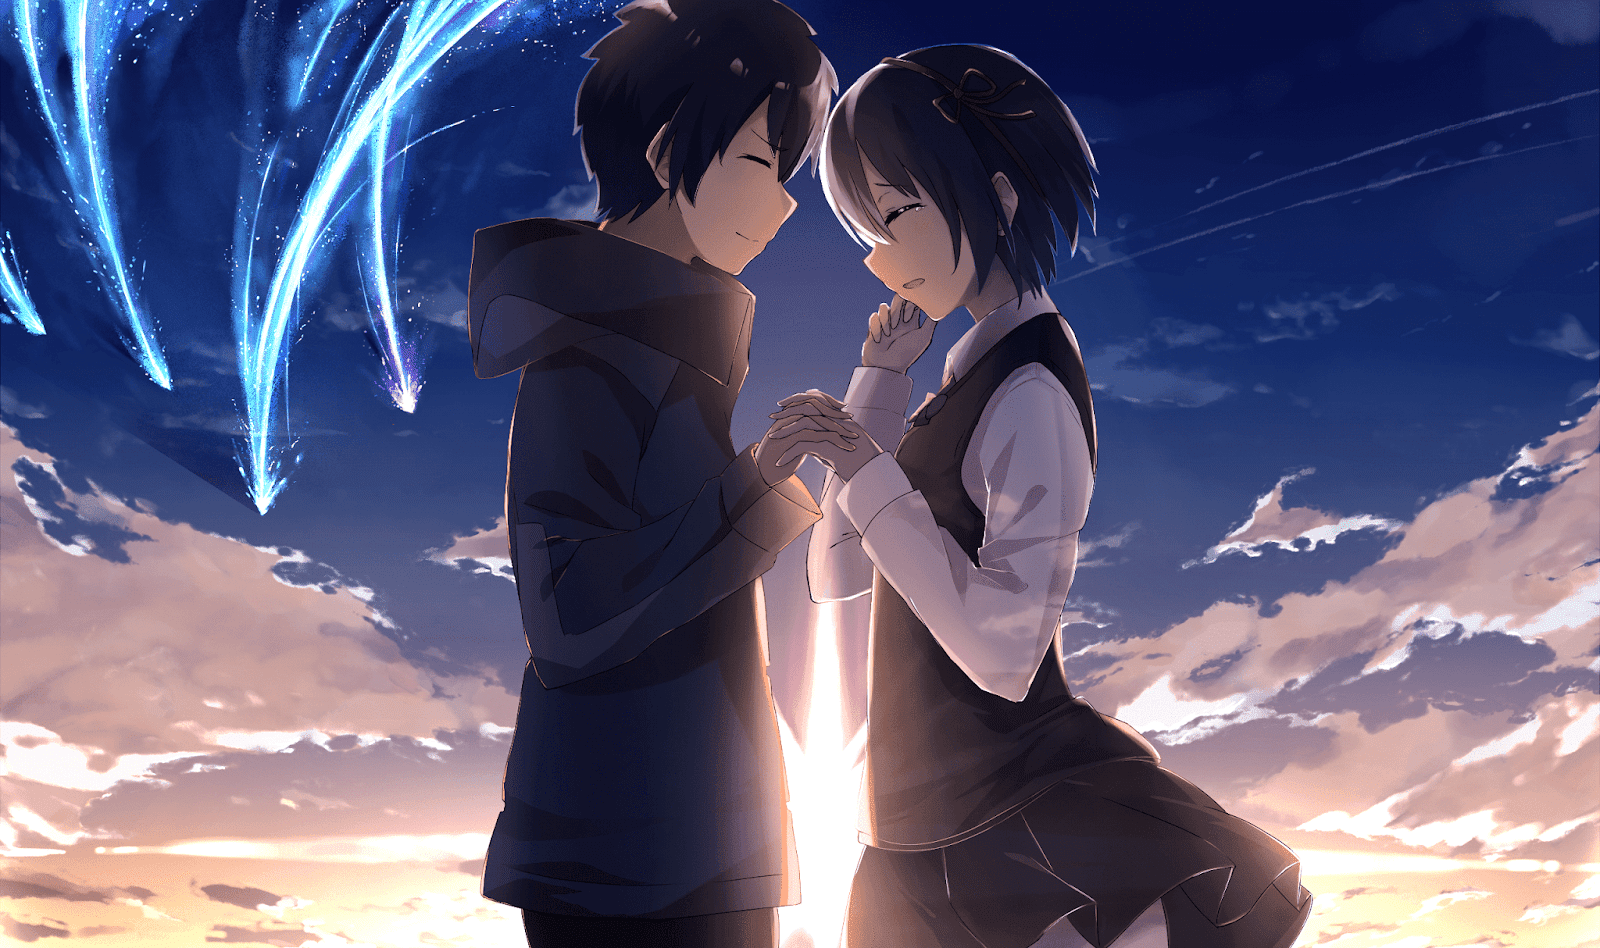 AowVN%2B%252837%2529 - [ Hình Nền ] Anime Your Name. - Kimi no Nawa full HD cực đẹp | Anime Wallpaper